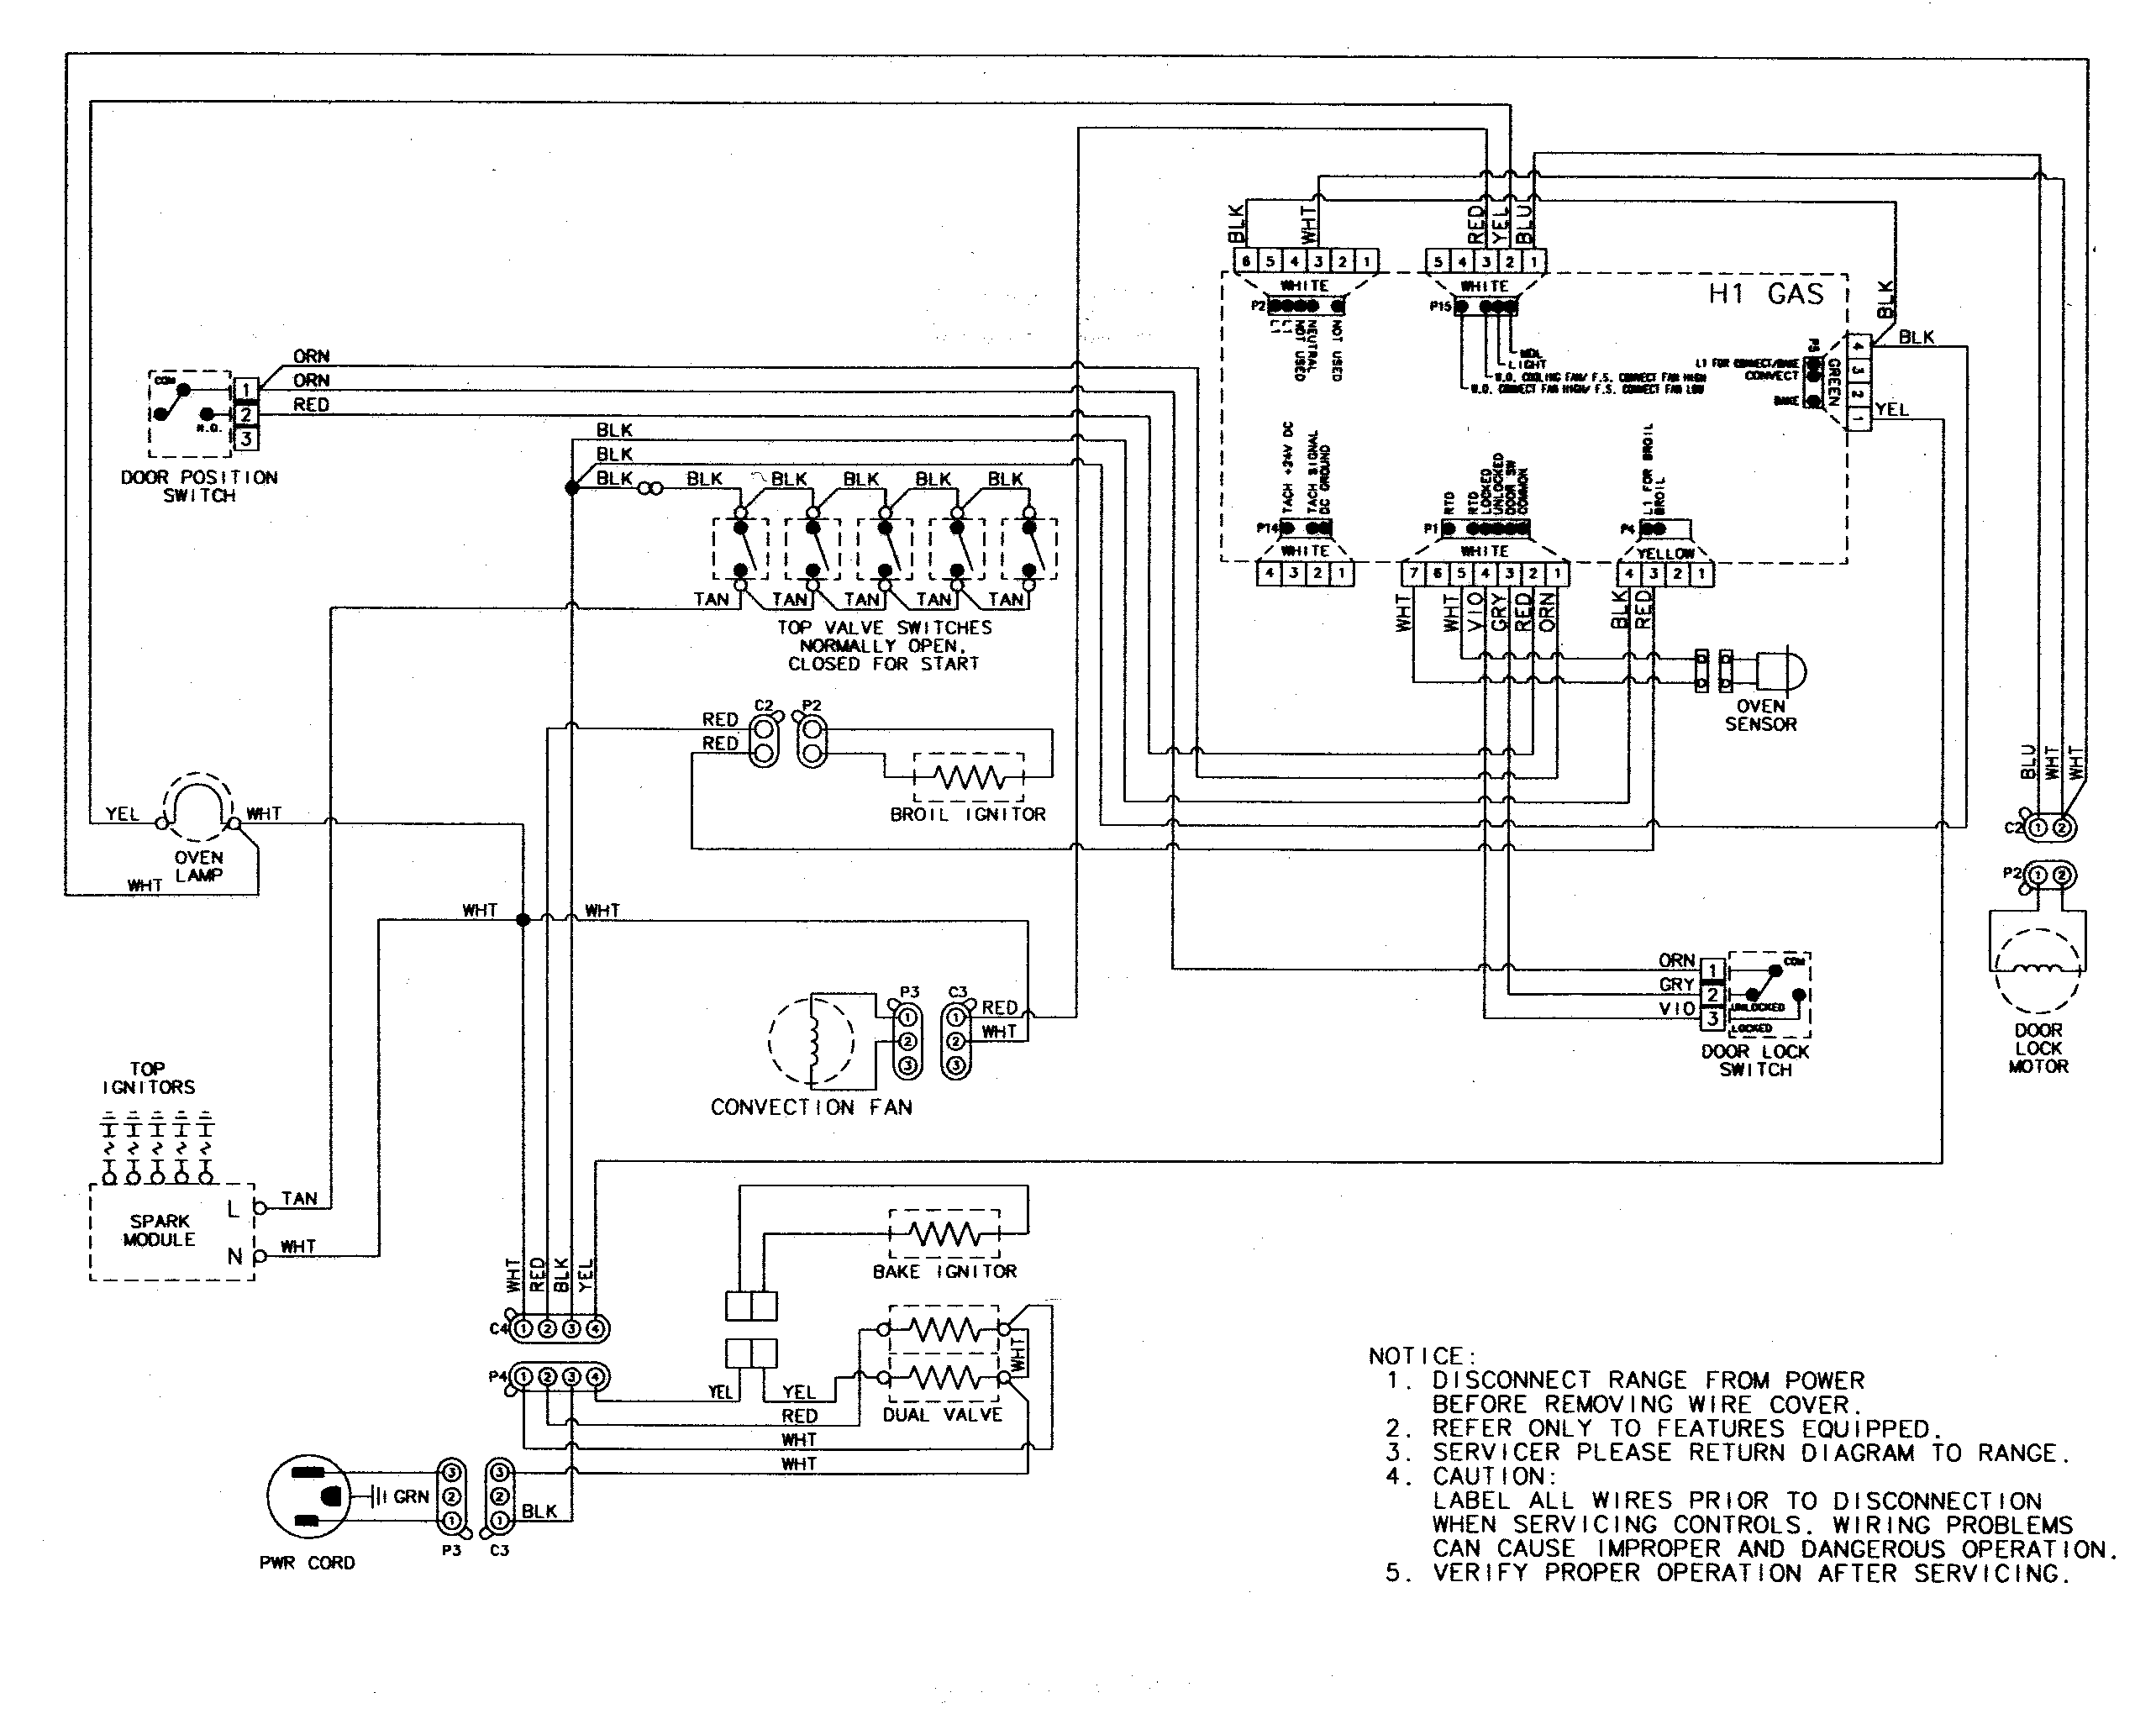 fireplace wiring diagram with Index on Furnace Gas Valve Wiring Diagram likewise Ventless Gas Fireplace Replacement Parts Wiring Diagrams besides 12753 additionally Electrolux Epic 6500 Wiring Diagram as well Fasco Wiring Diagram.